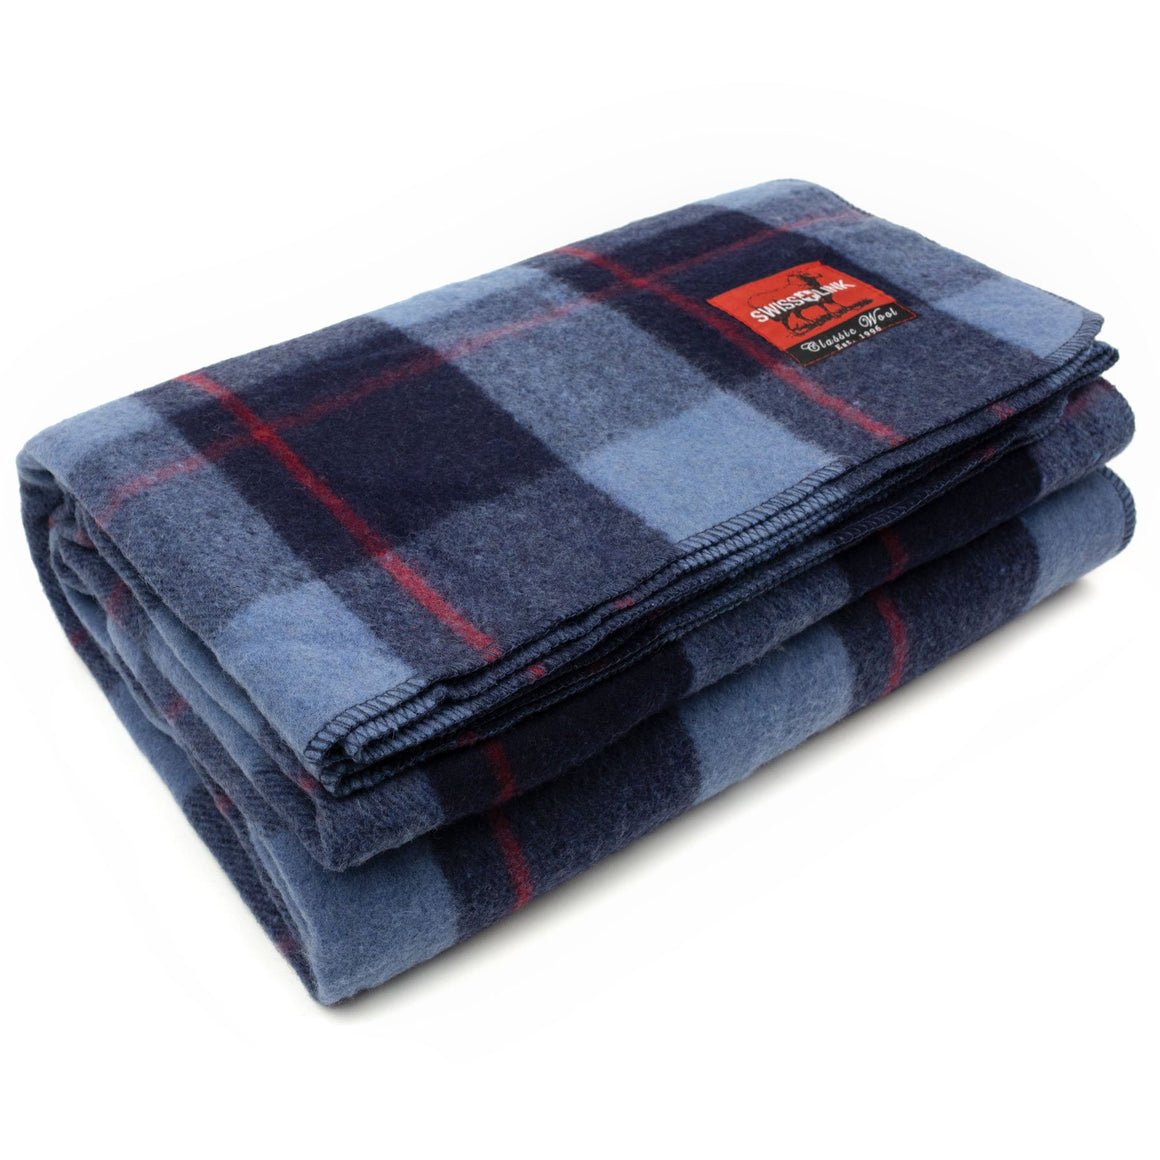 Swiss Link Classic Wool Plaid Blanket